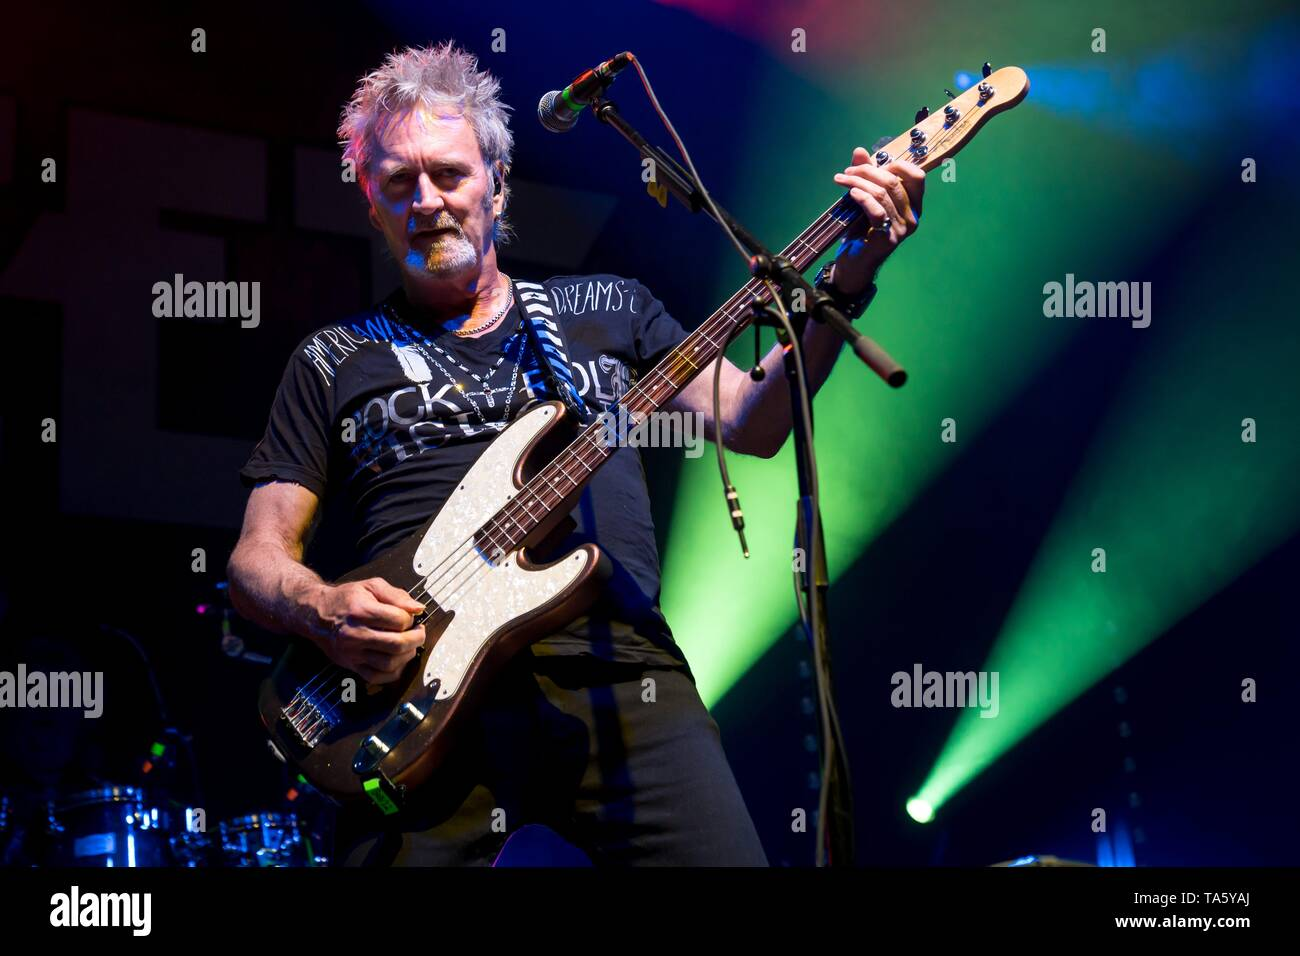 Berlin, Deutschland. 21st May, 2019. 21.05.2019, the British rock singer and bassist of the glam rock band The Sweet Pete Lincoln live on stage at the STILL GOT THE ROCK - Tour 2019 in the Columbiahalle in Berlin.   usage worldwide Credit: dpa/Alamy Live News Stock Photo